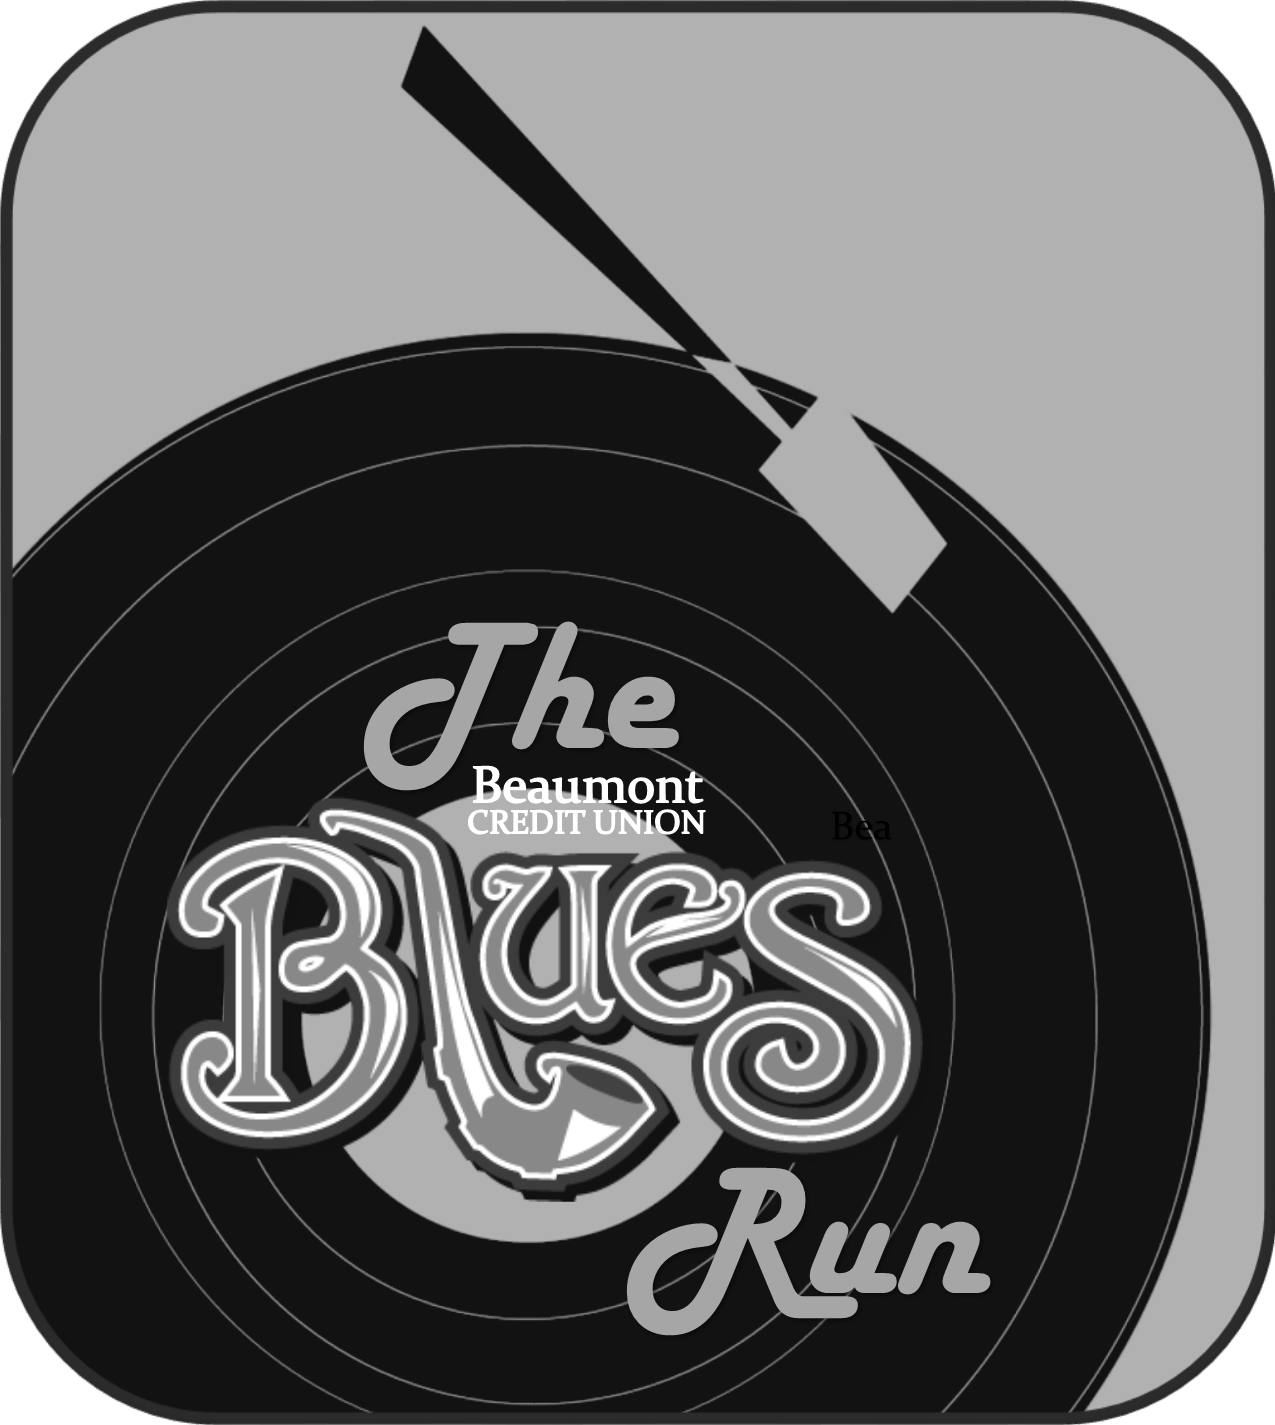 Beaumont Credit Union Blues Run - 2018 Logo